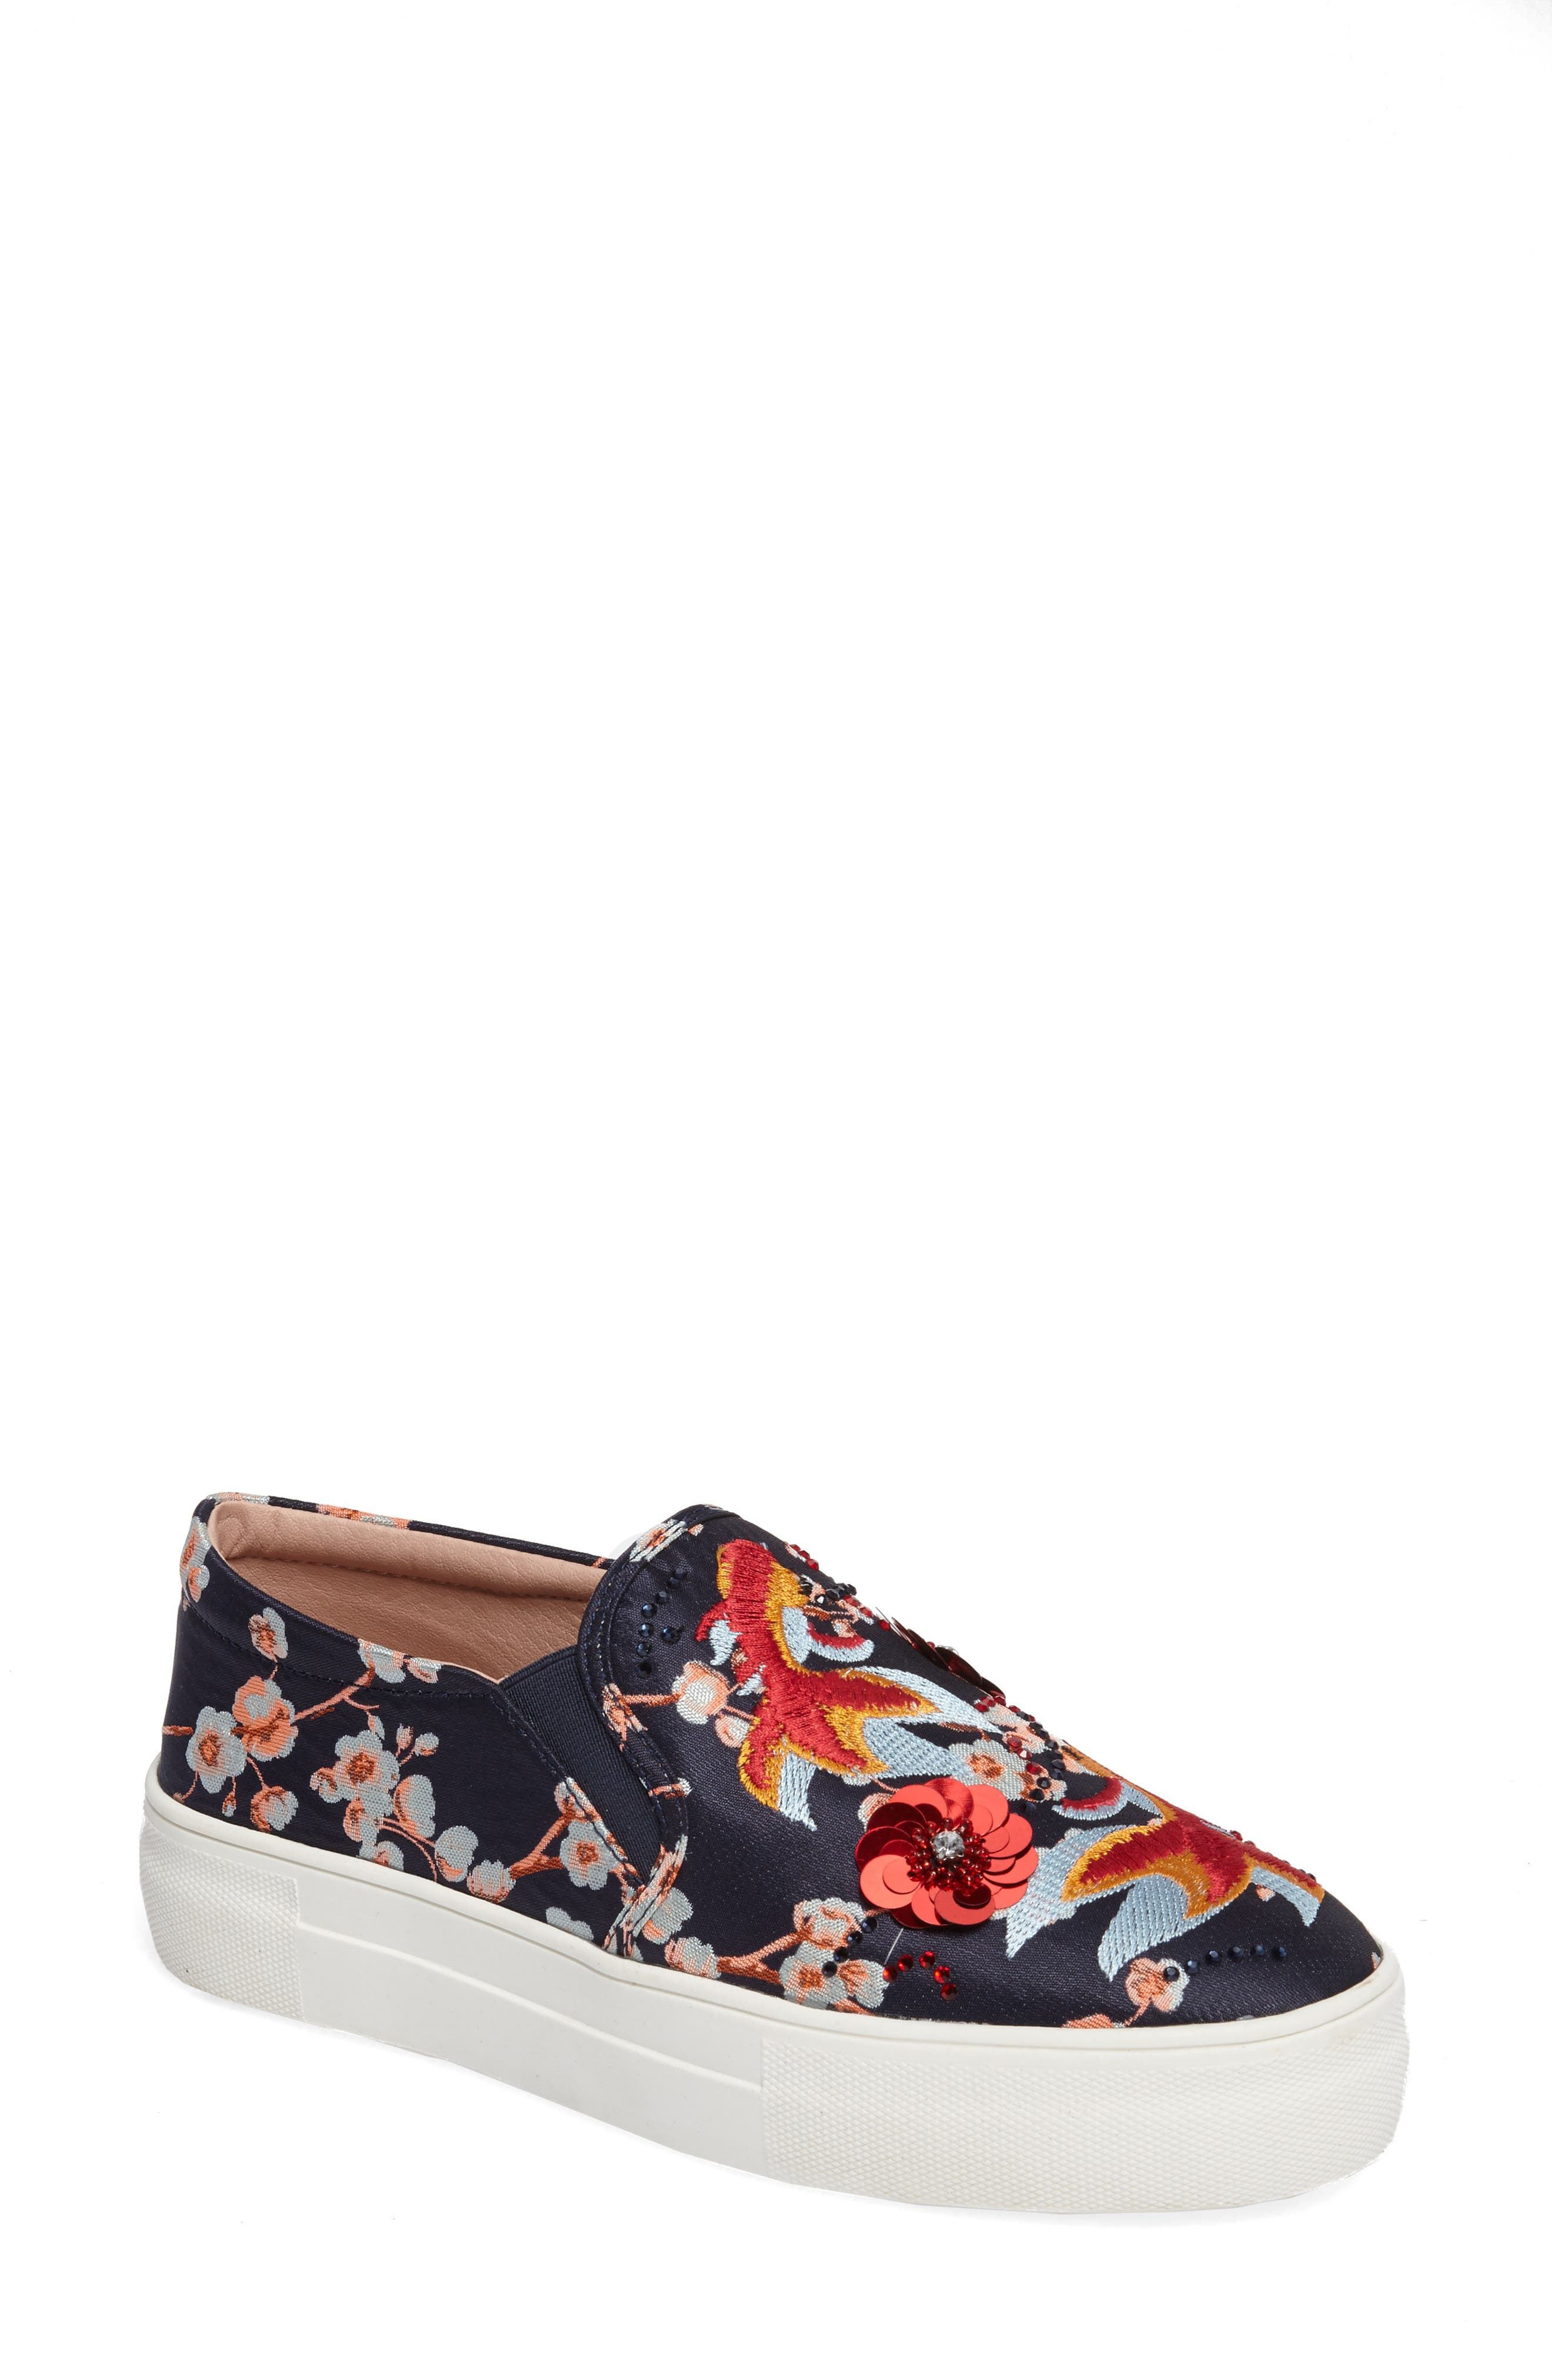 Theory Goldfish Embellished Slip-On Sneaker,                             Main thumbnail 1, color,                             001